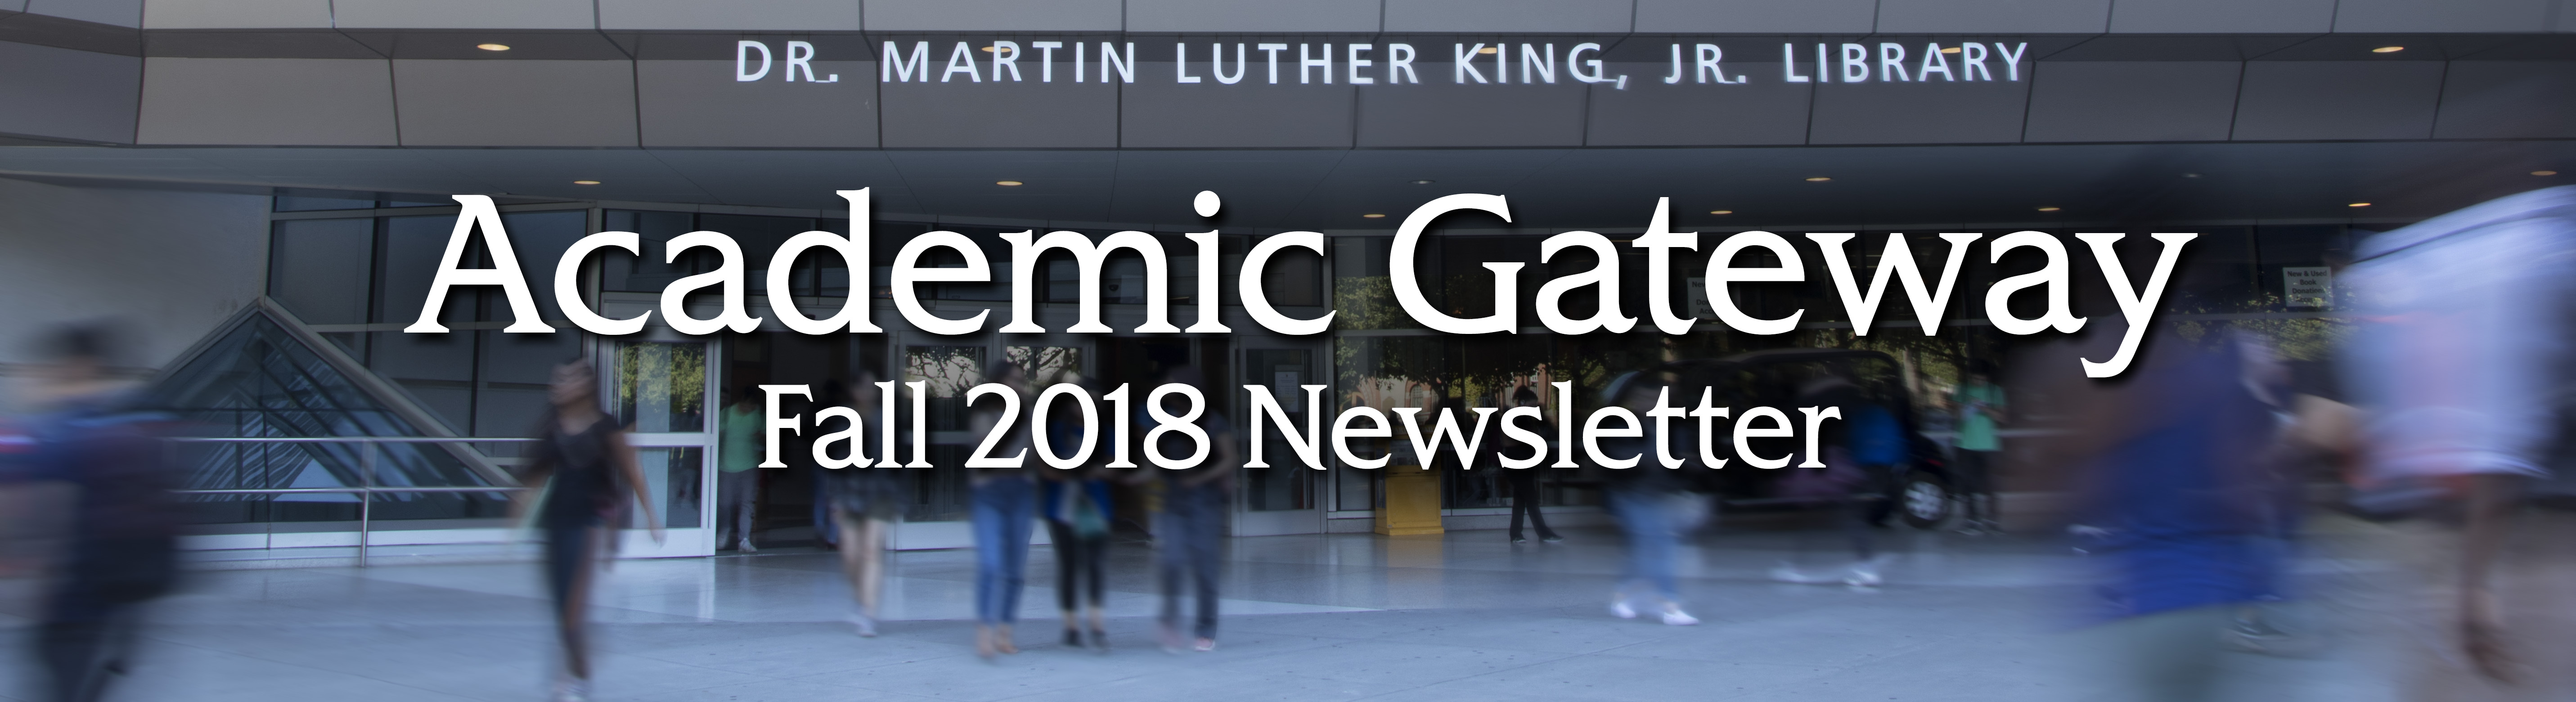 Academic Gateway Newsletter Header Image of Library Building